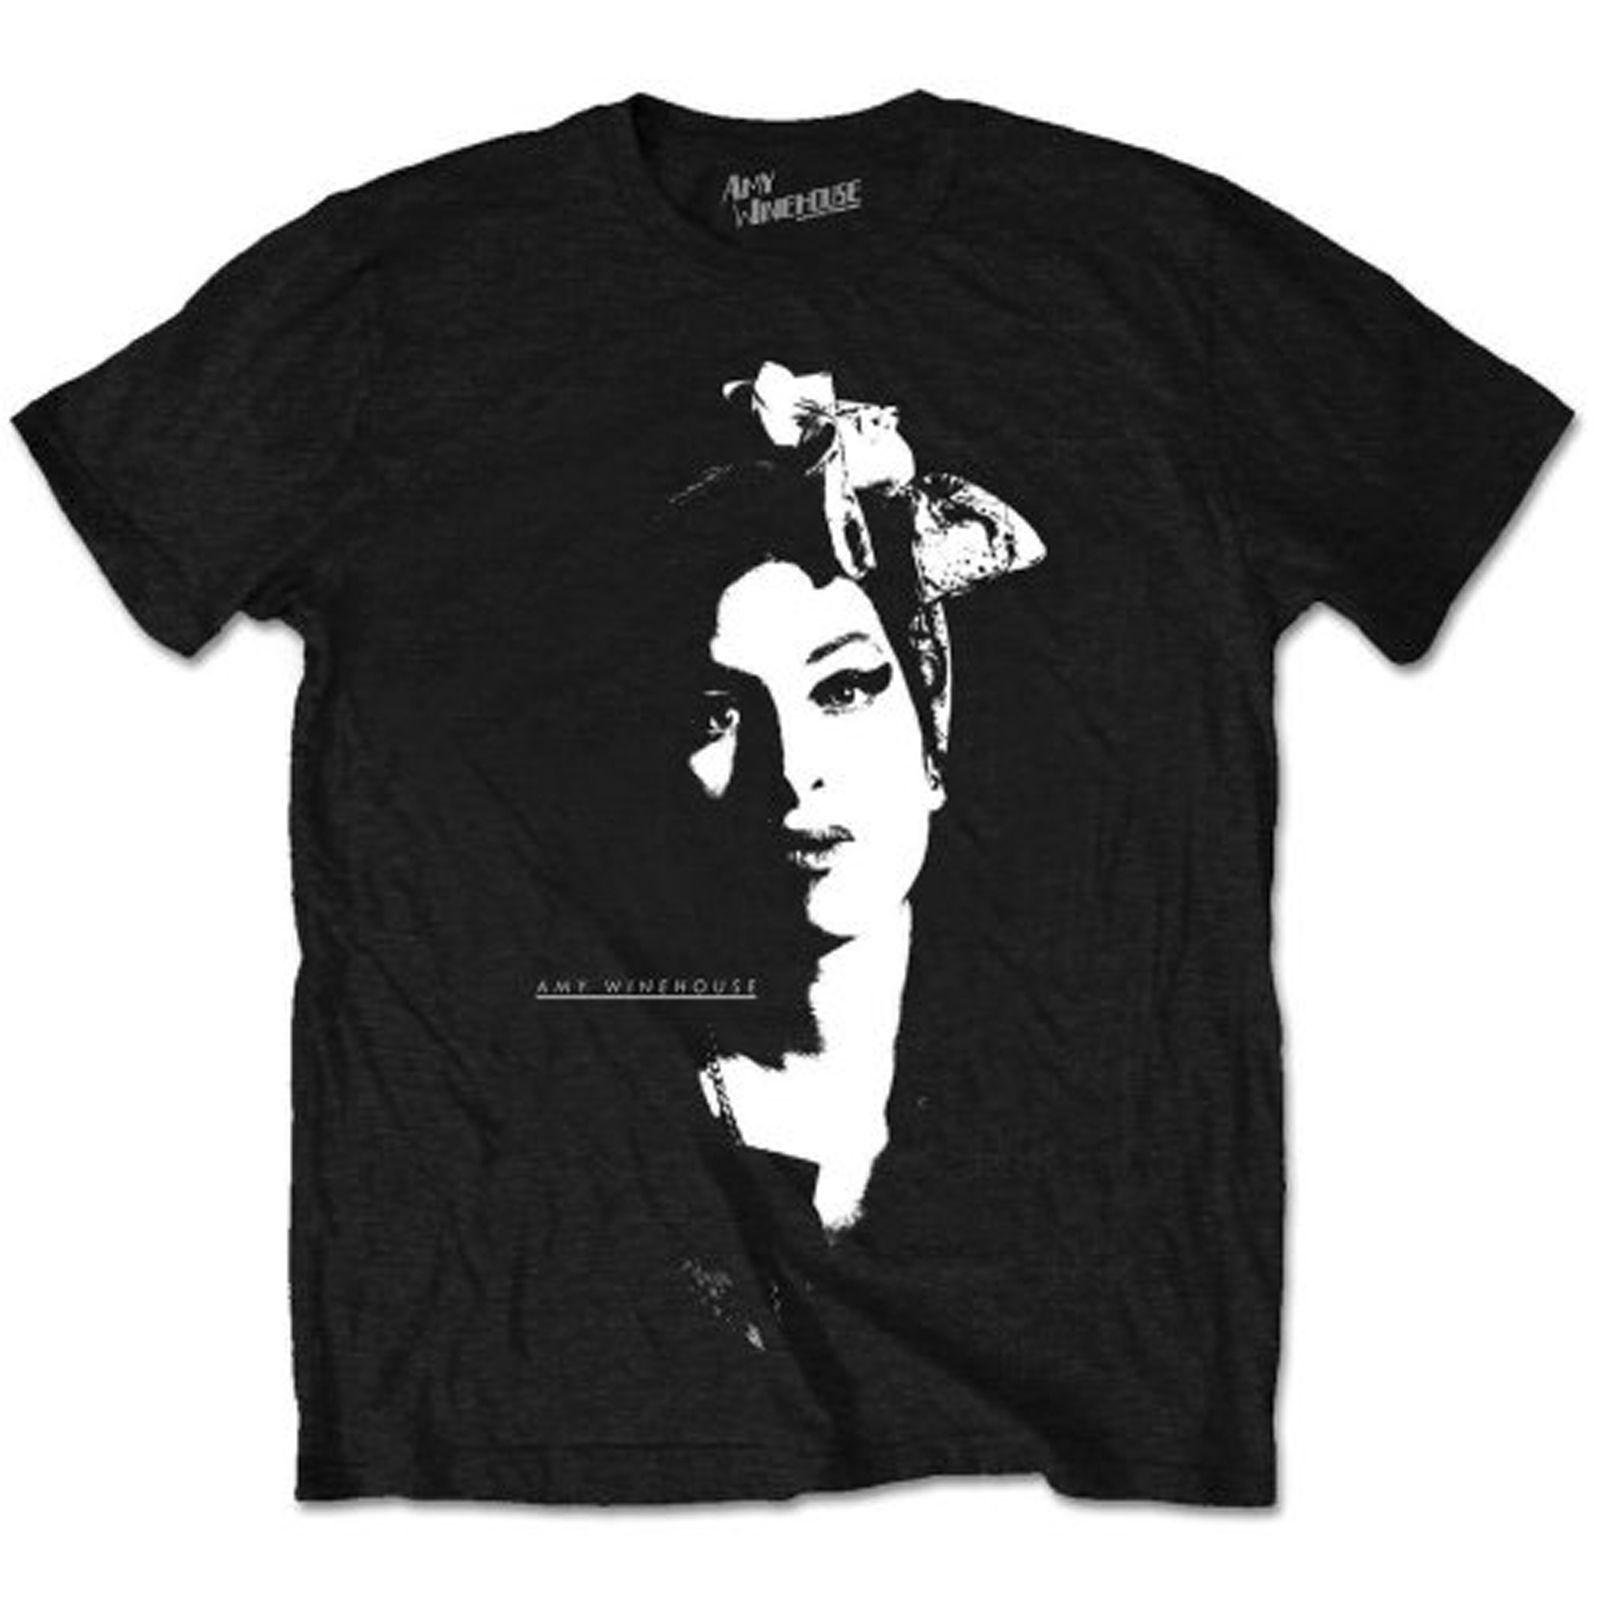 Amy Winehouse Back To Black Frank Oficial Camiseta Para Hombre Print T  Shirts Man Short Sleeve T Shirt Top Tee Funny T Shirts Cheap As T Shirts  From Biyue1 28c24b3cc4a